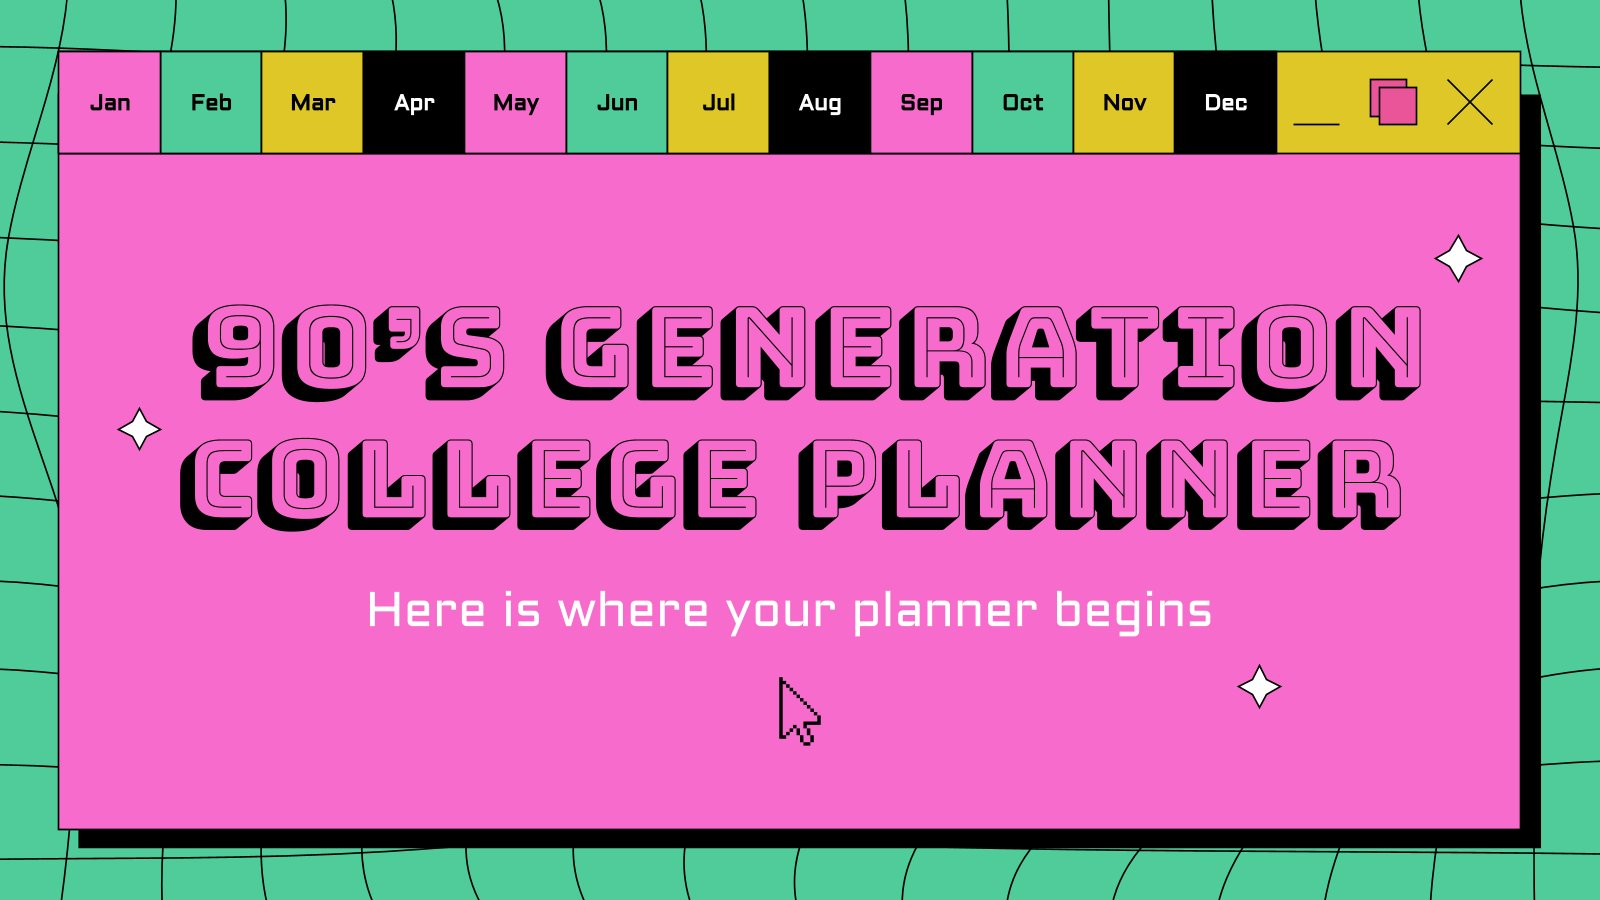 90's Generation College Planner presentation template